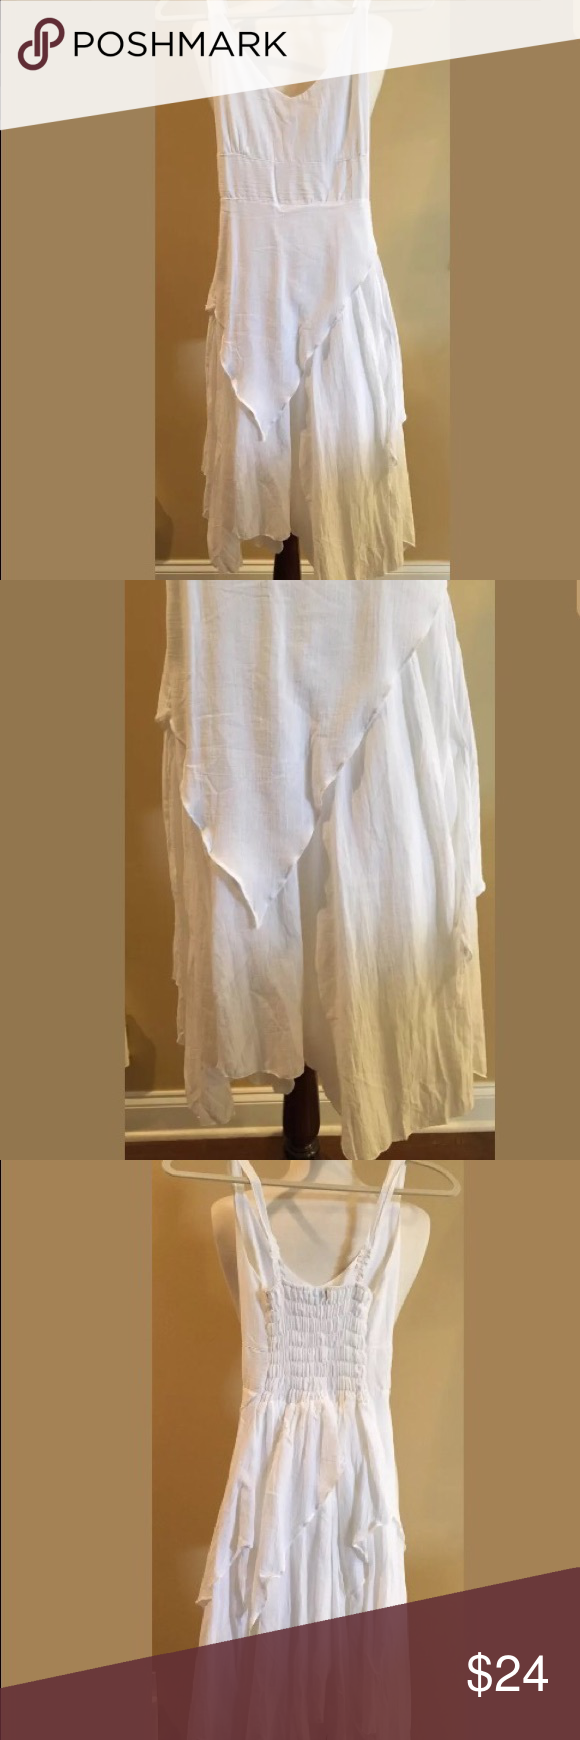 6a500e4d1e679 NWT Blanc Du Nil Dress Cotton Dress Size XST Beautiful light and airy blanc  du nil 100% cotton dress never worn with tags! In pristine condition and  perfect ...